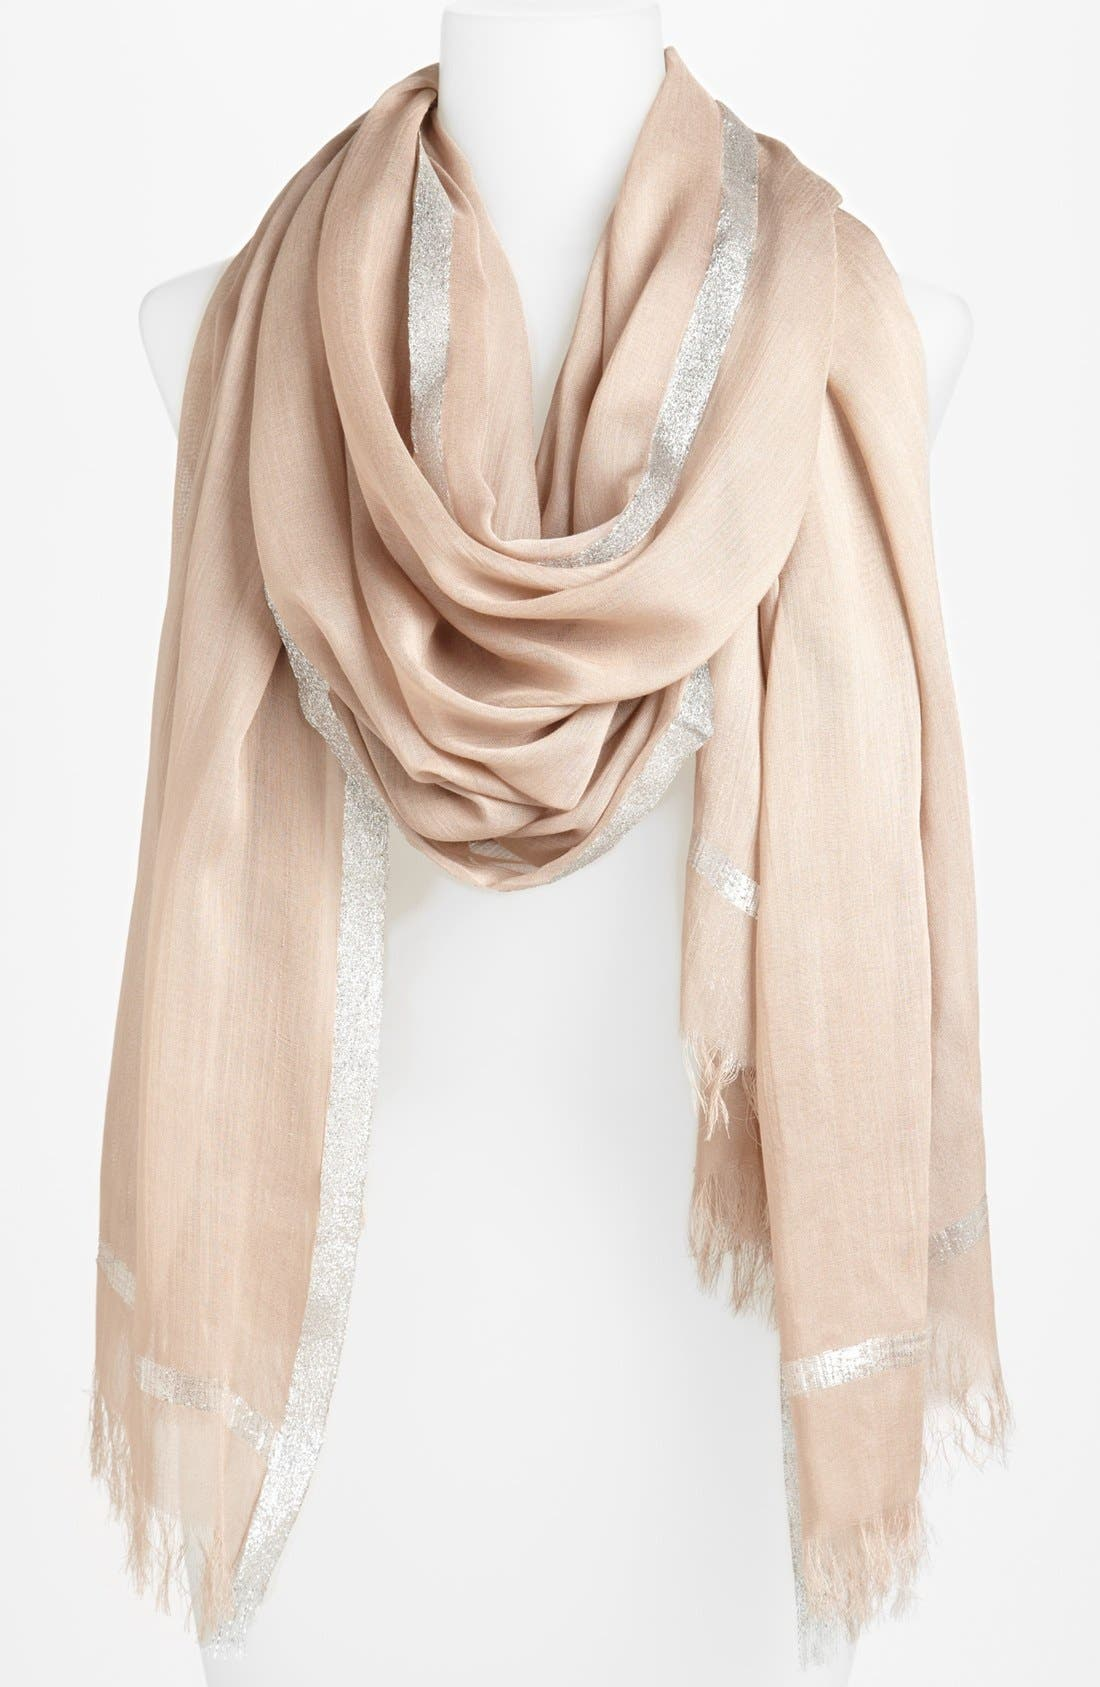 Alternate Image 1 Selected - Roffe Accessories Silver Trim Scarf (Special Purchase)